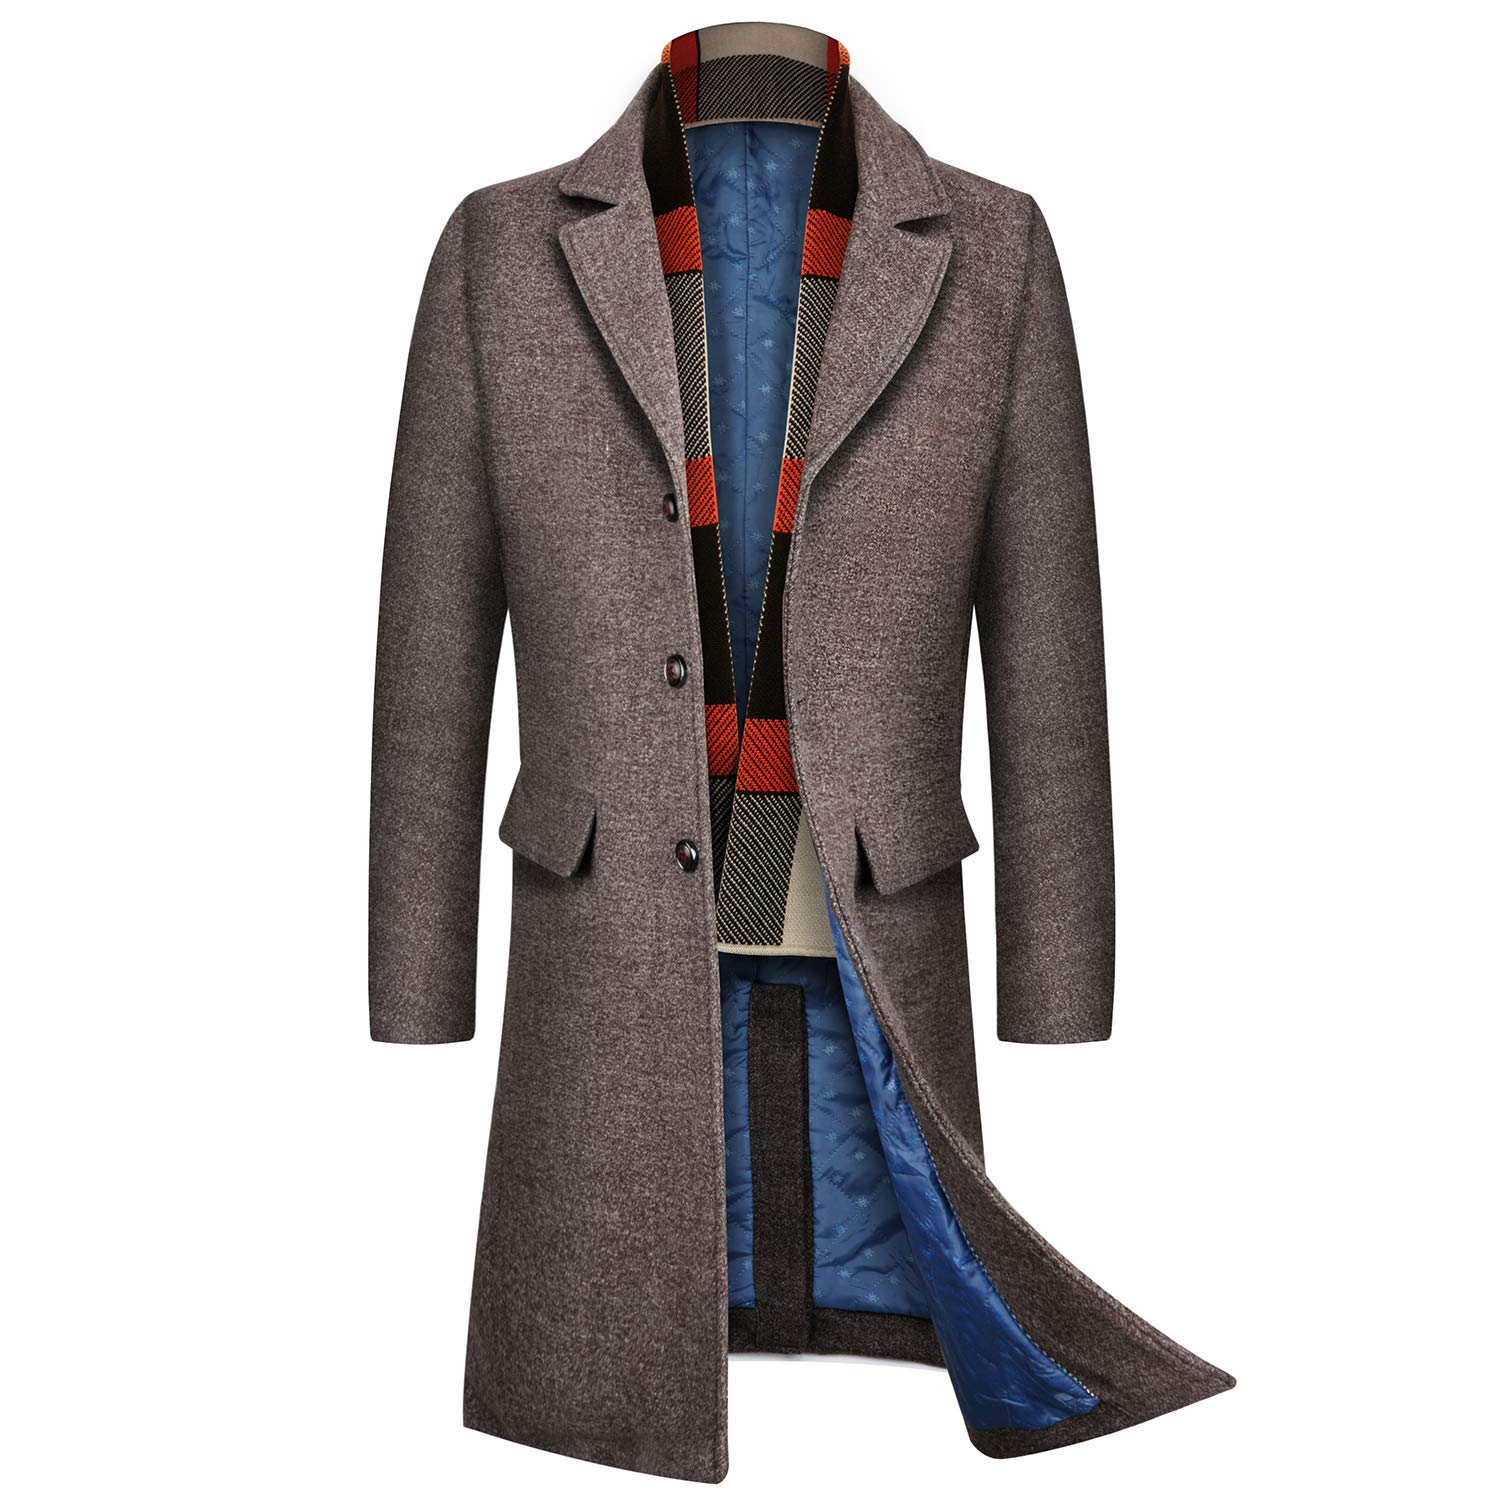 INVACHI Men's Slim Fit Winter Warm Long Wool Coat Business Jacket with Free Detachable Soft Touch Wool Scarf by INVACHI